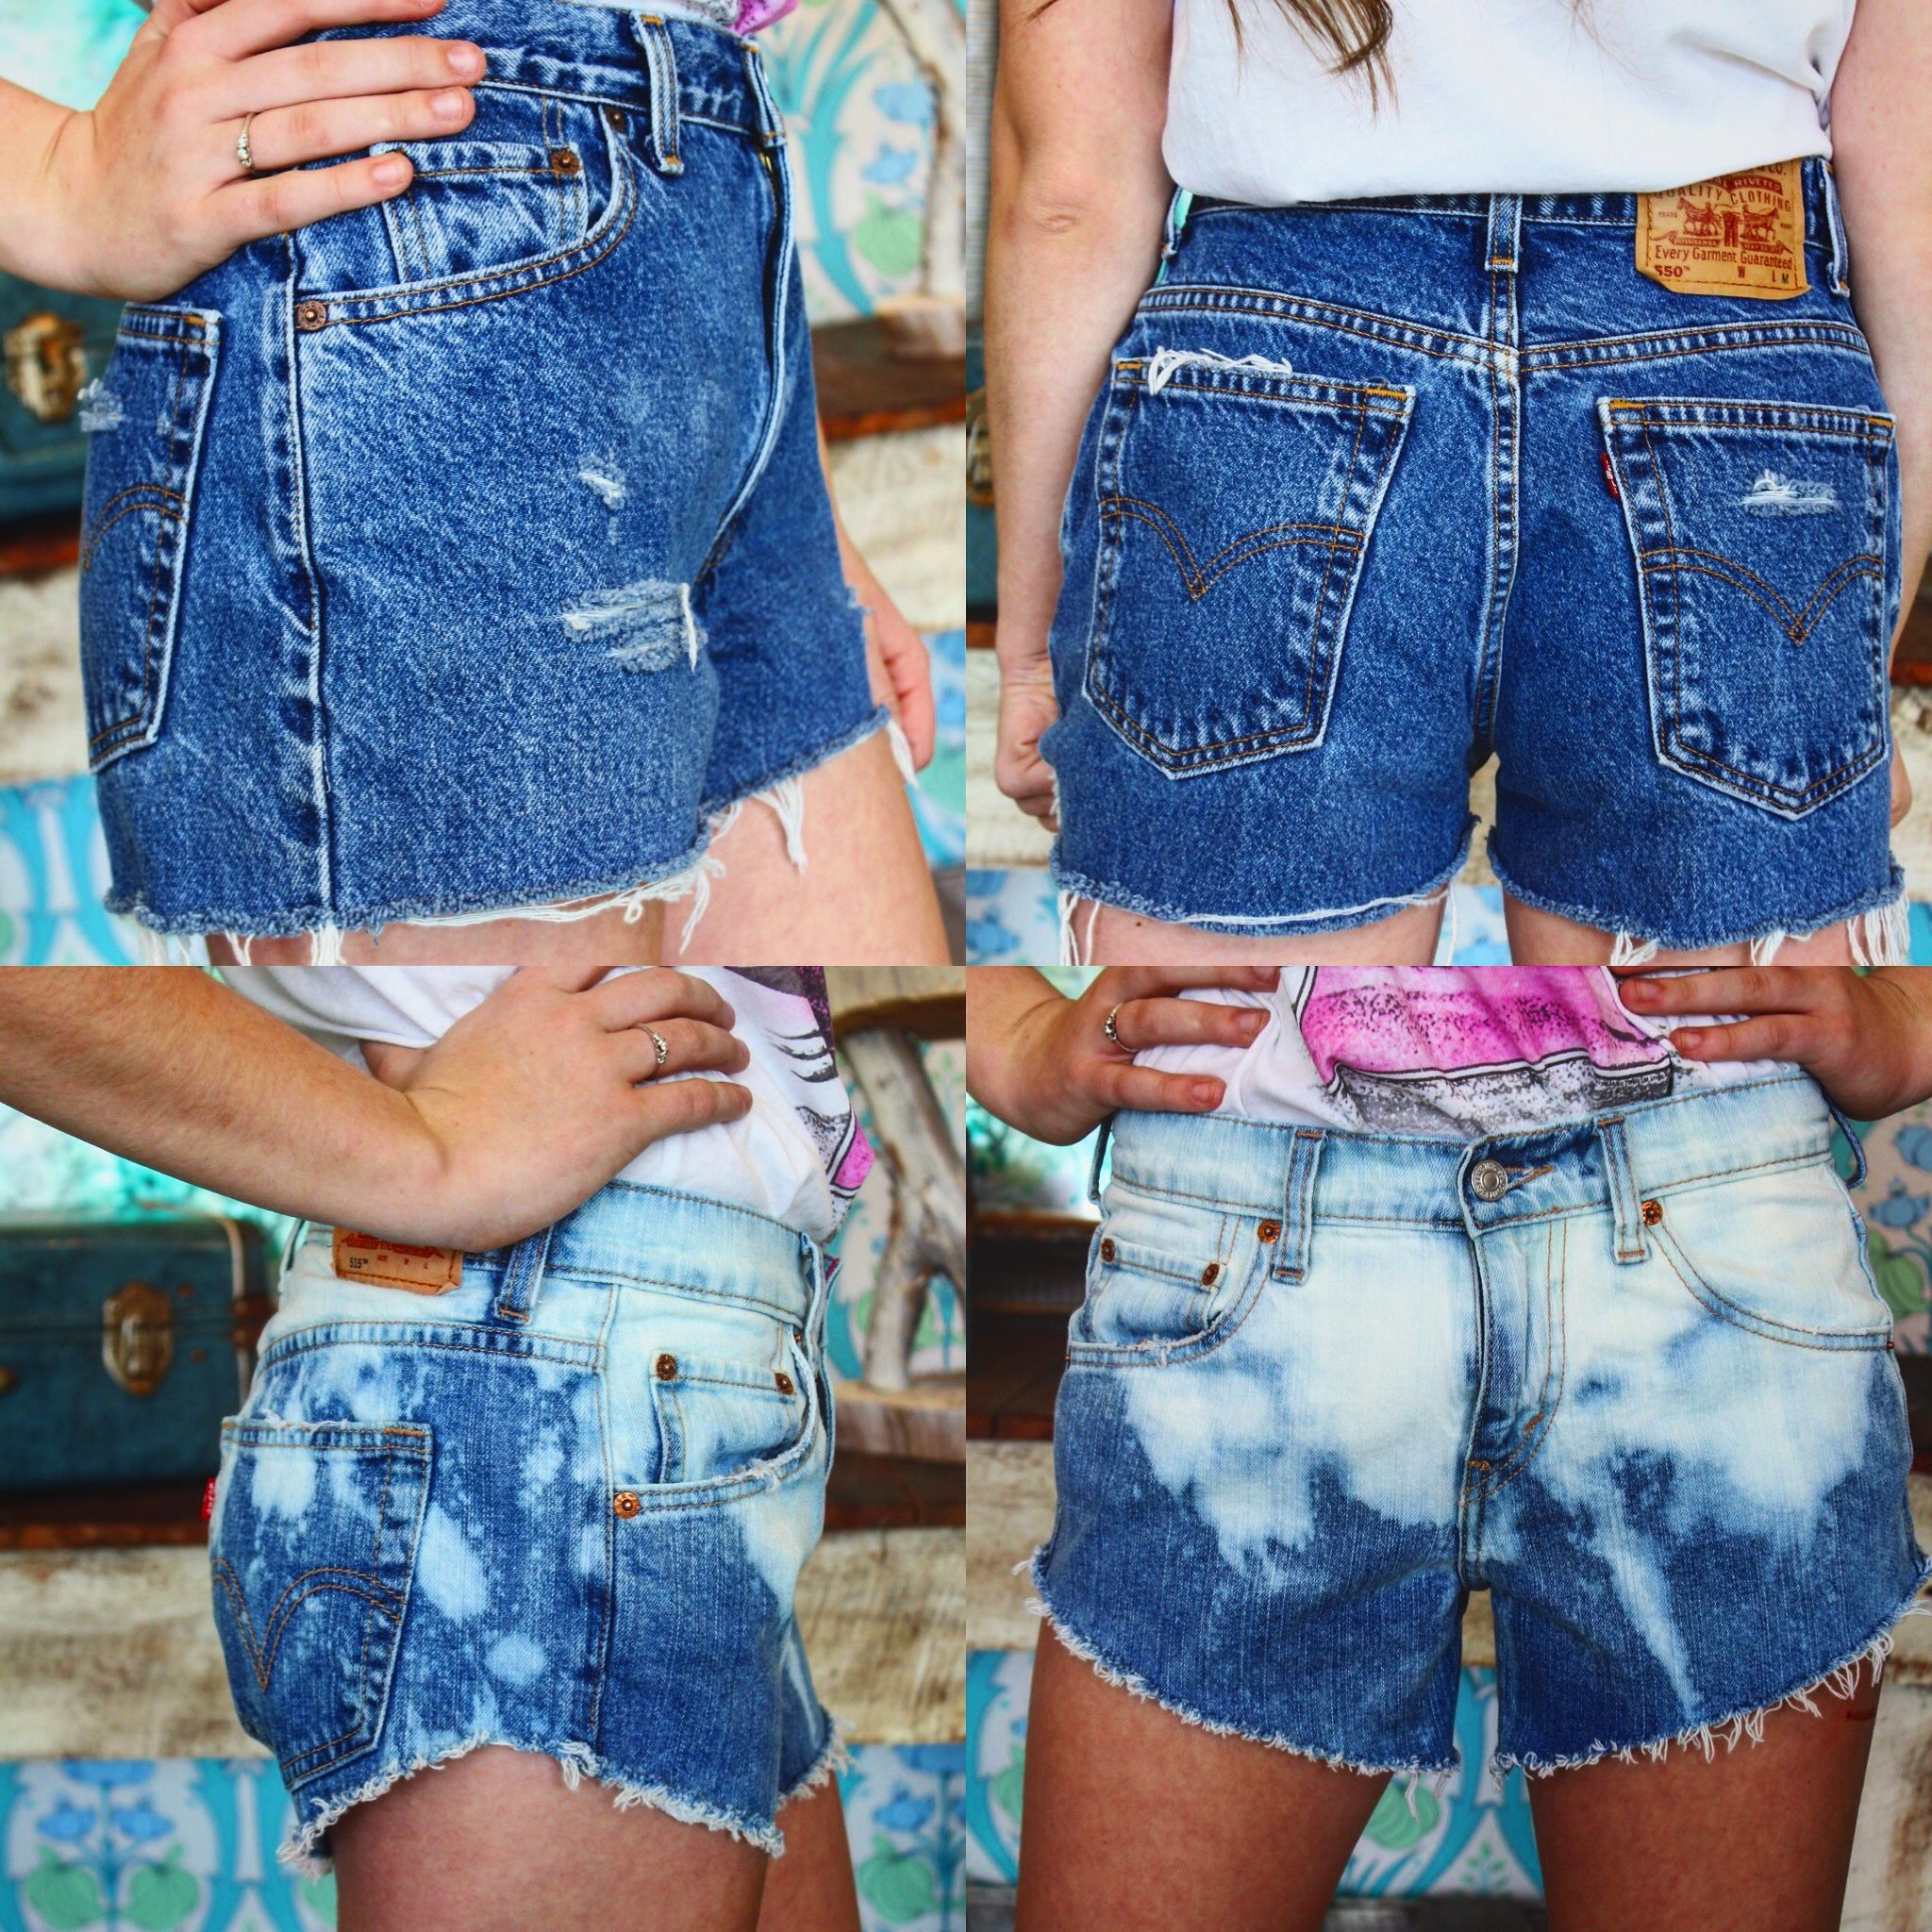 Just a few more of our fav pieces from our new distressed shorts line